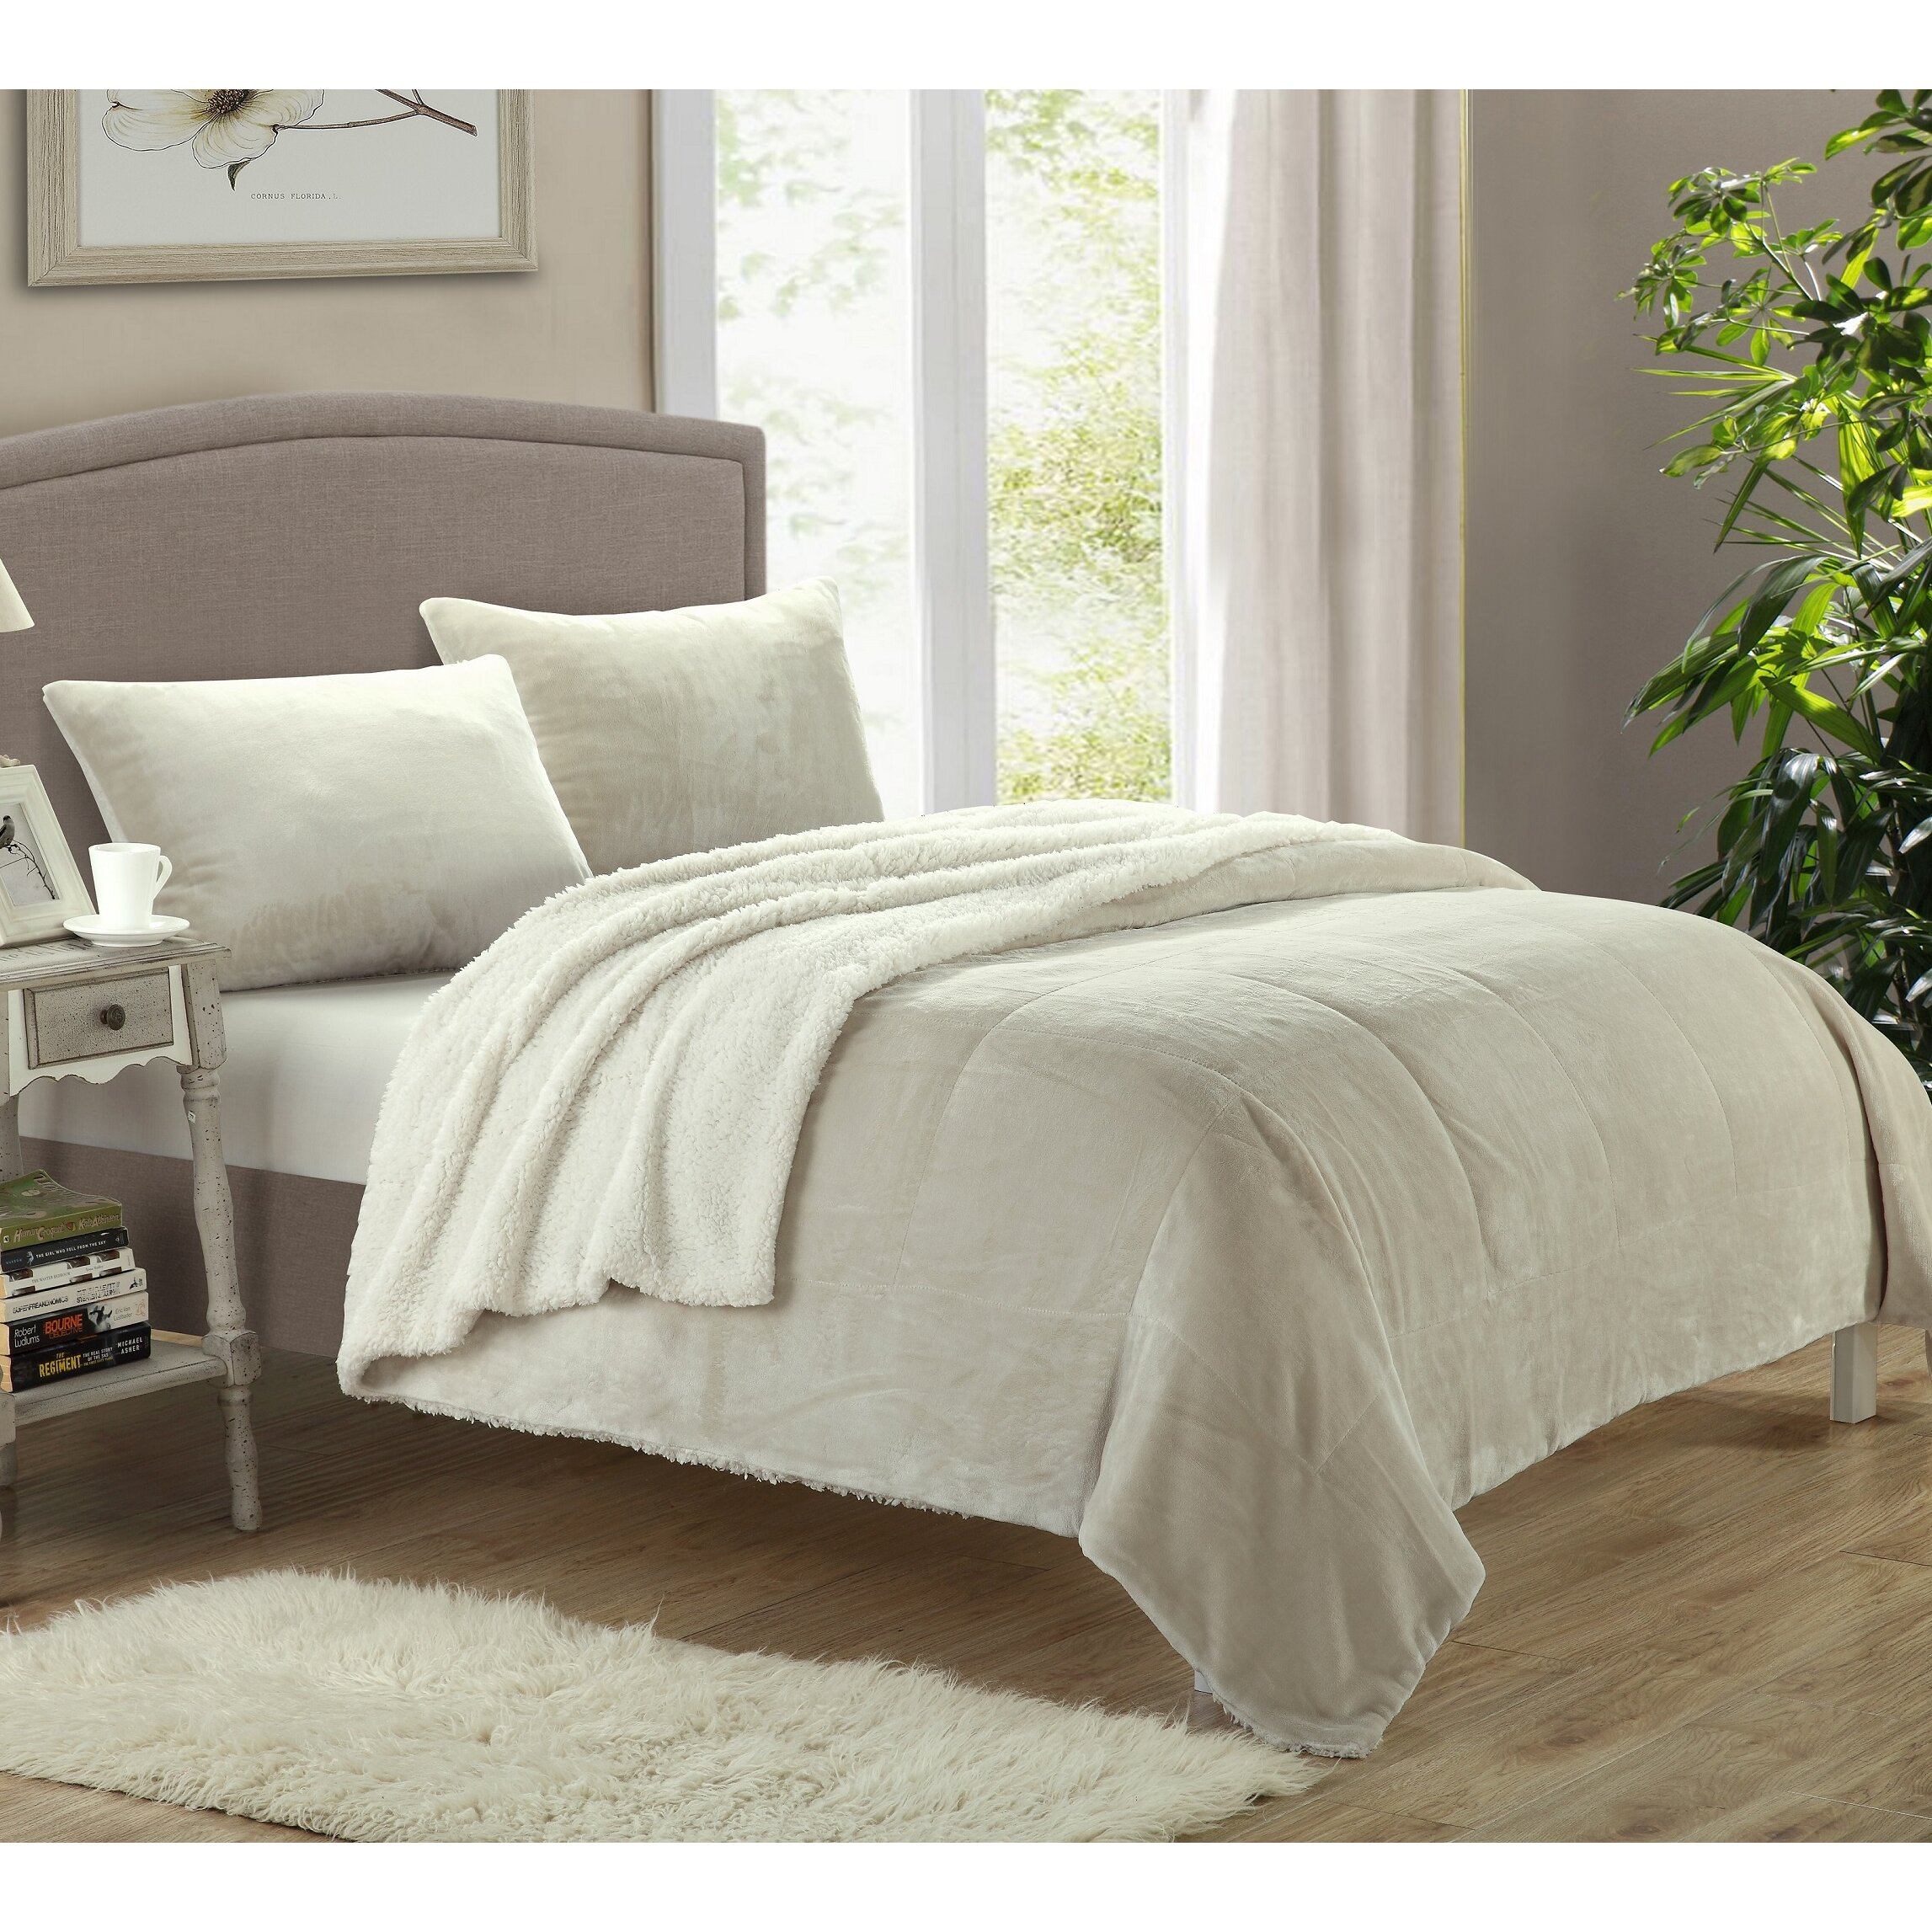 Chic Home Evie 2 Piece Twin Xl Comforter Set Amp Reviews